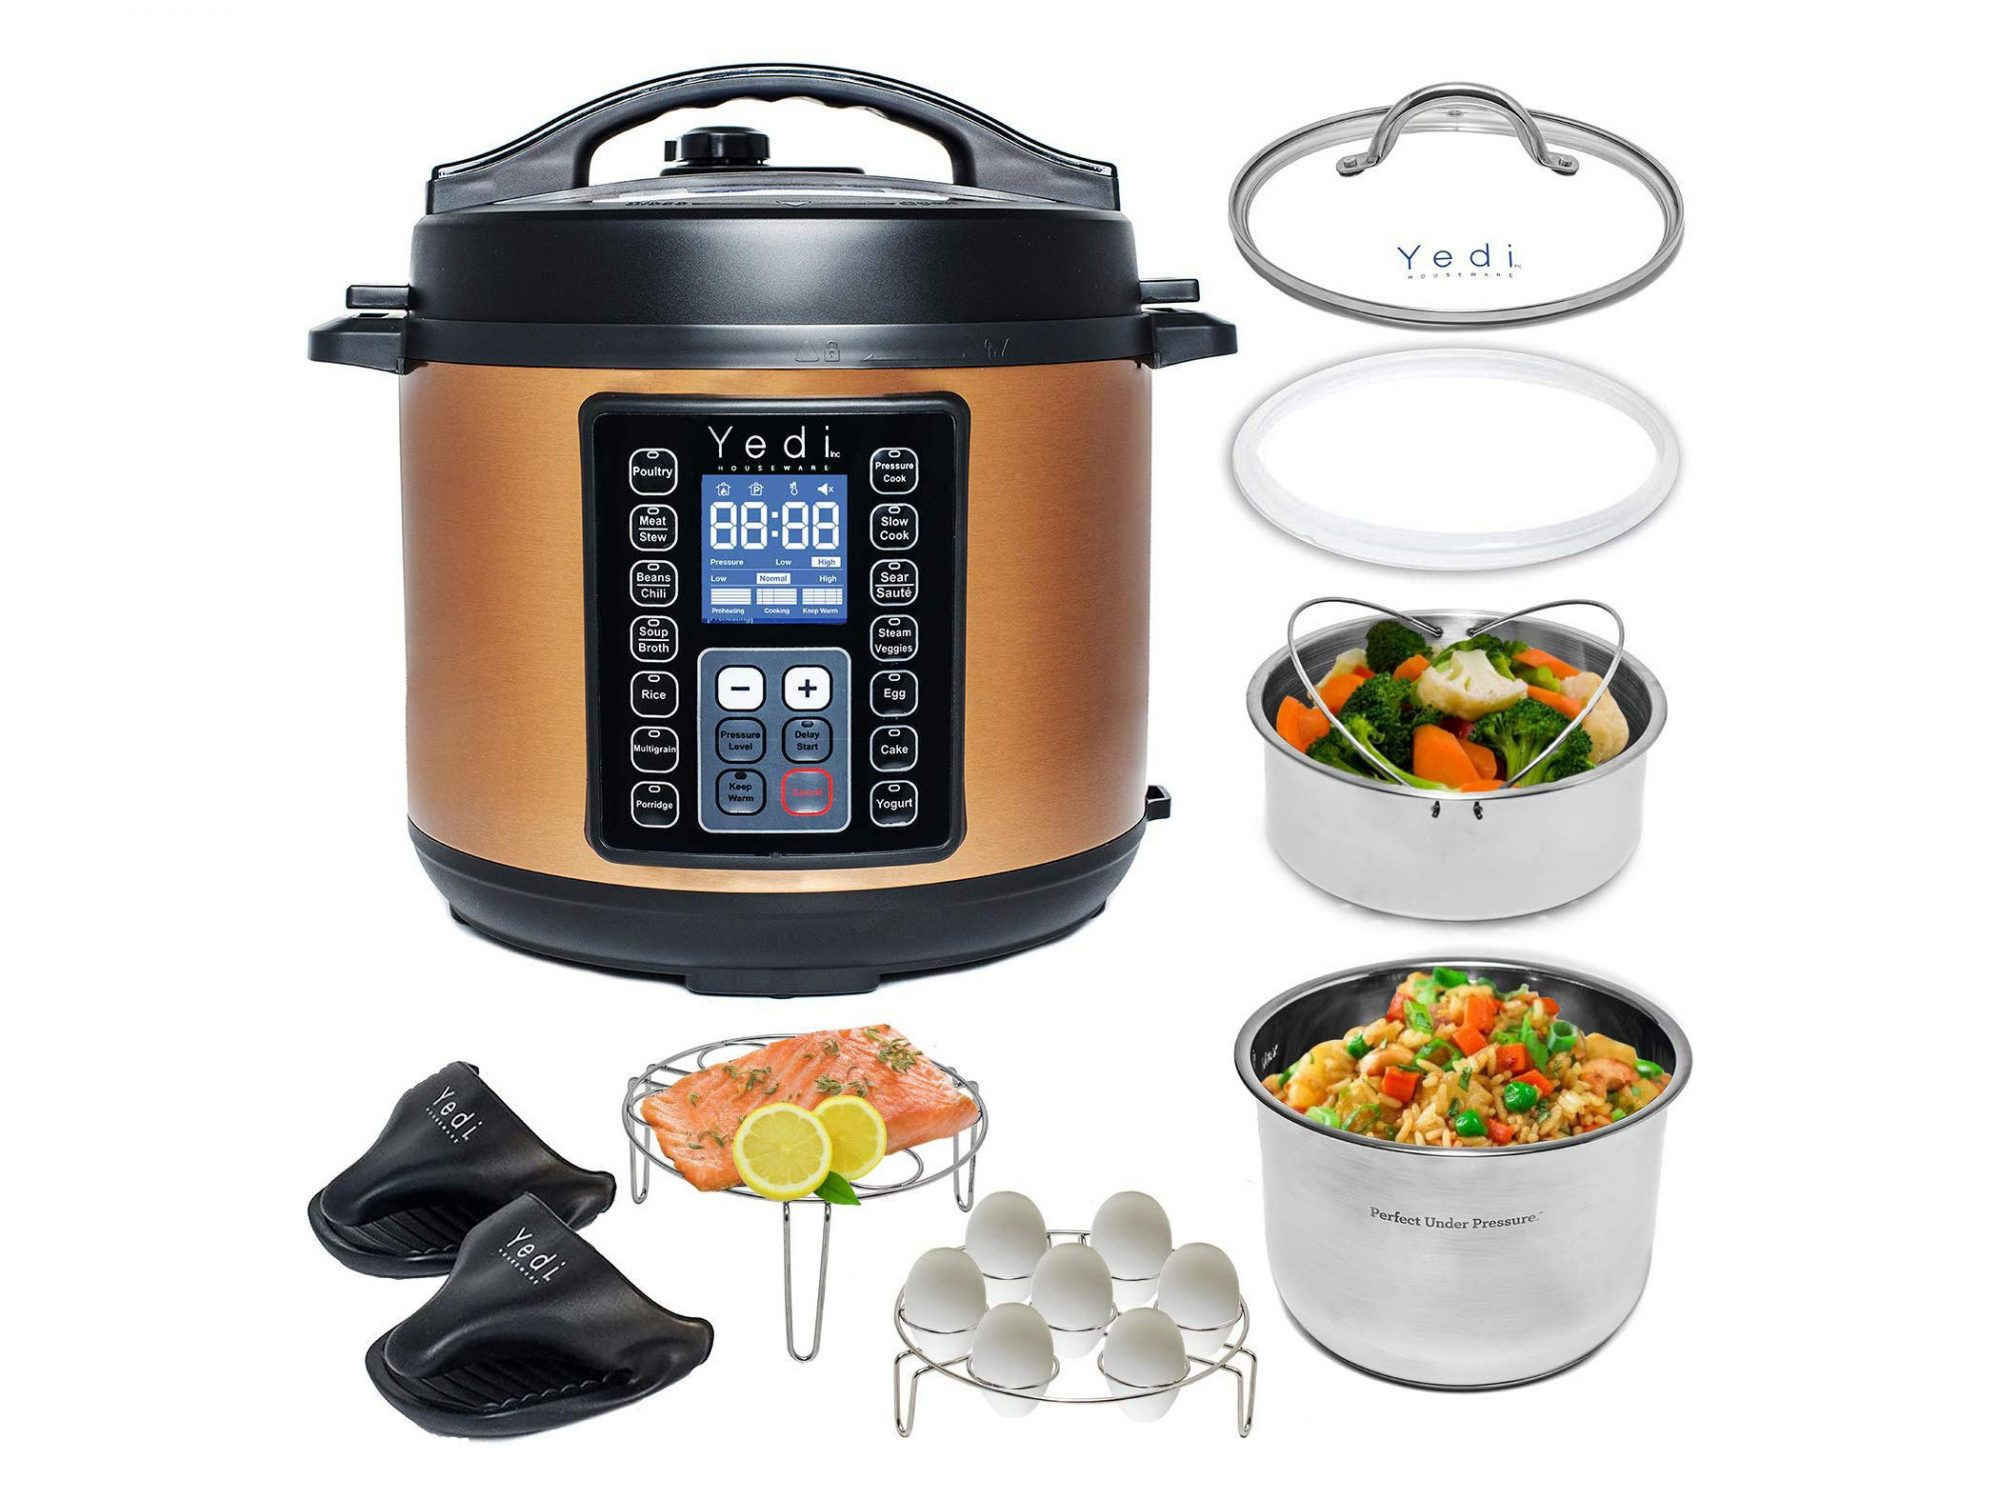 Yedi 9-in-1 Total Package Instant Programmable Pressure Cooker with all parts displayed